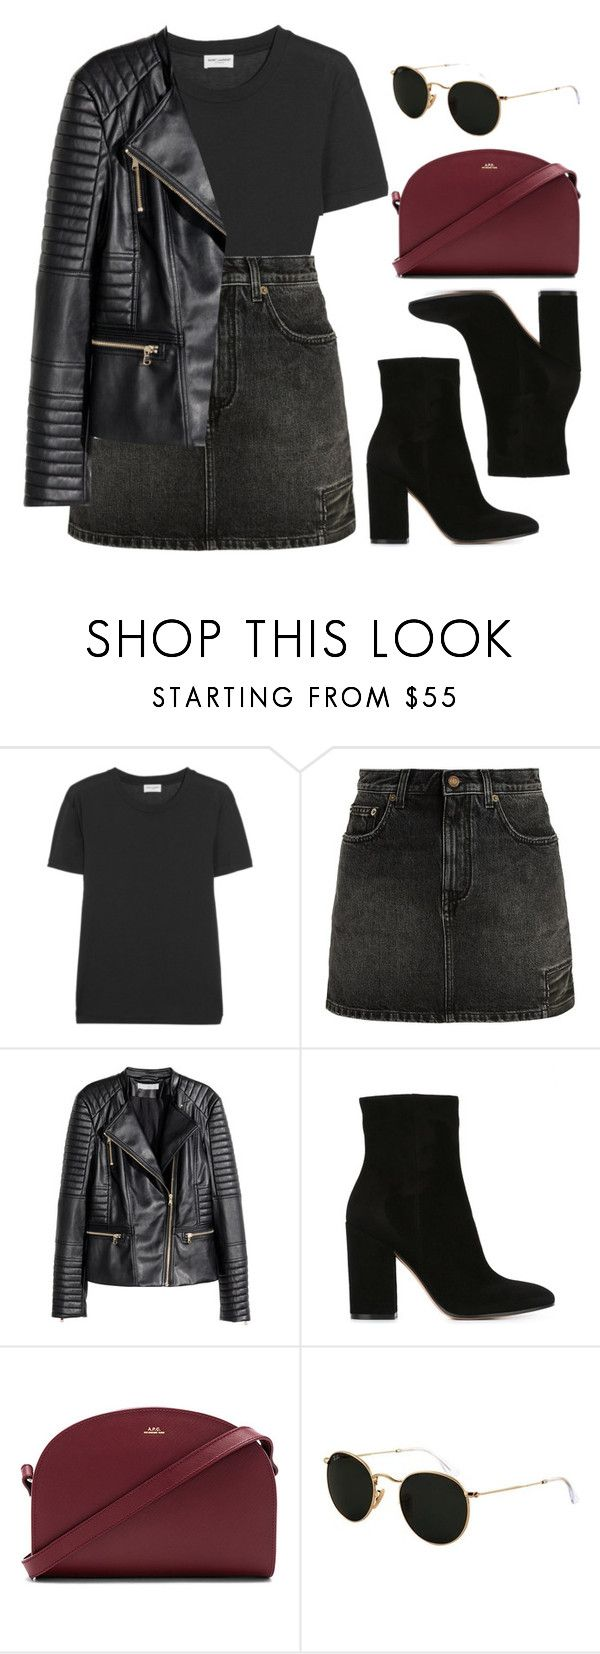 """""""Denim Skirt"""" by vany-alvarado ❤ liked on Polyvore featuring Yves Saint Laurent, H&M, Gianvito Rossi, A.P.C. and Ray-Ban"""